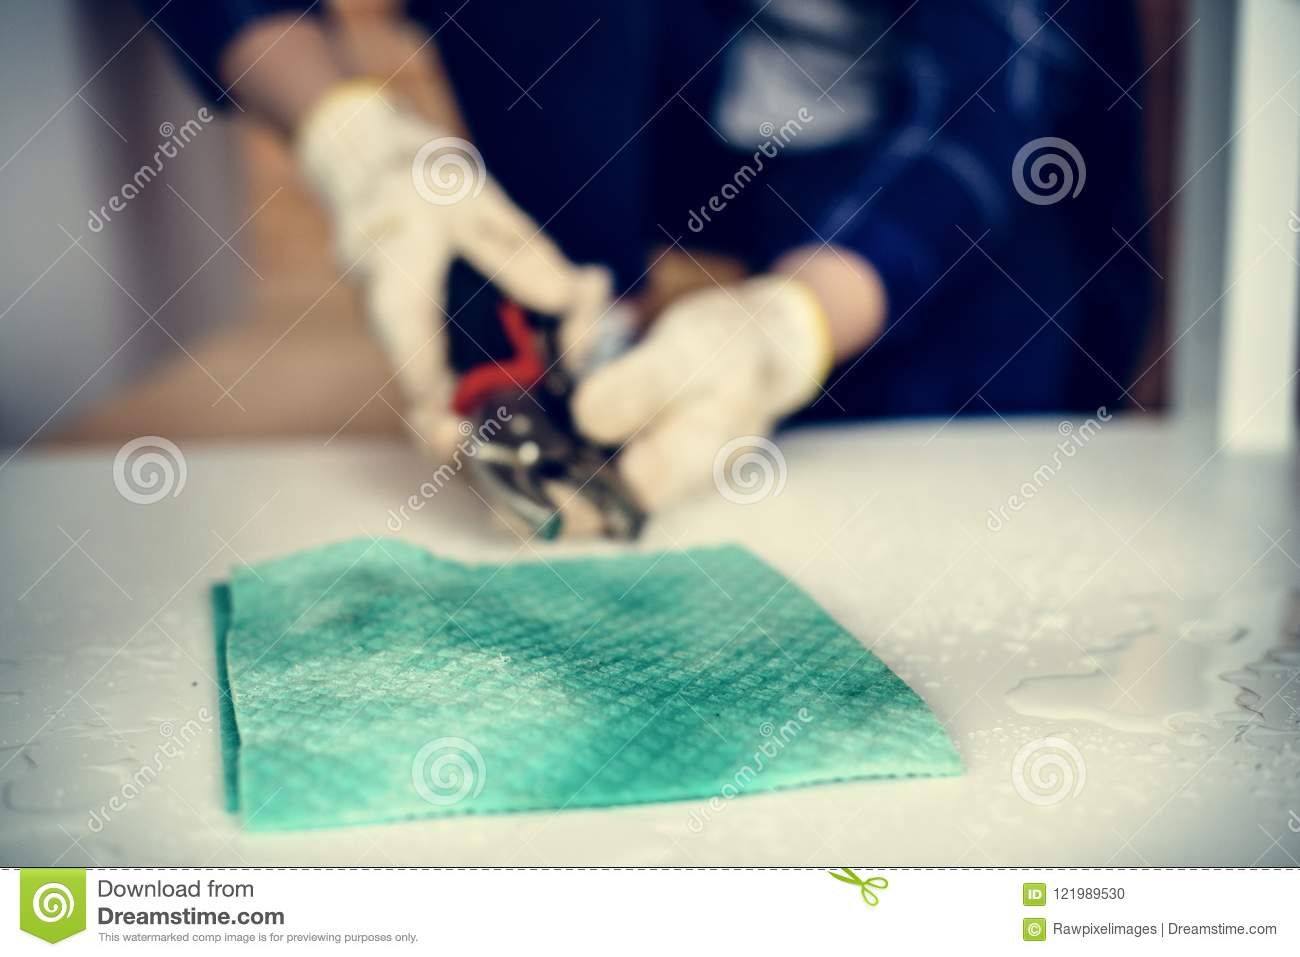 People Fixing Kitchen Sink Home DIY Concept Stock Photo - Image of ...